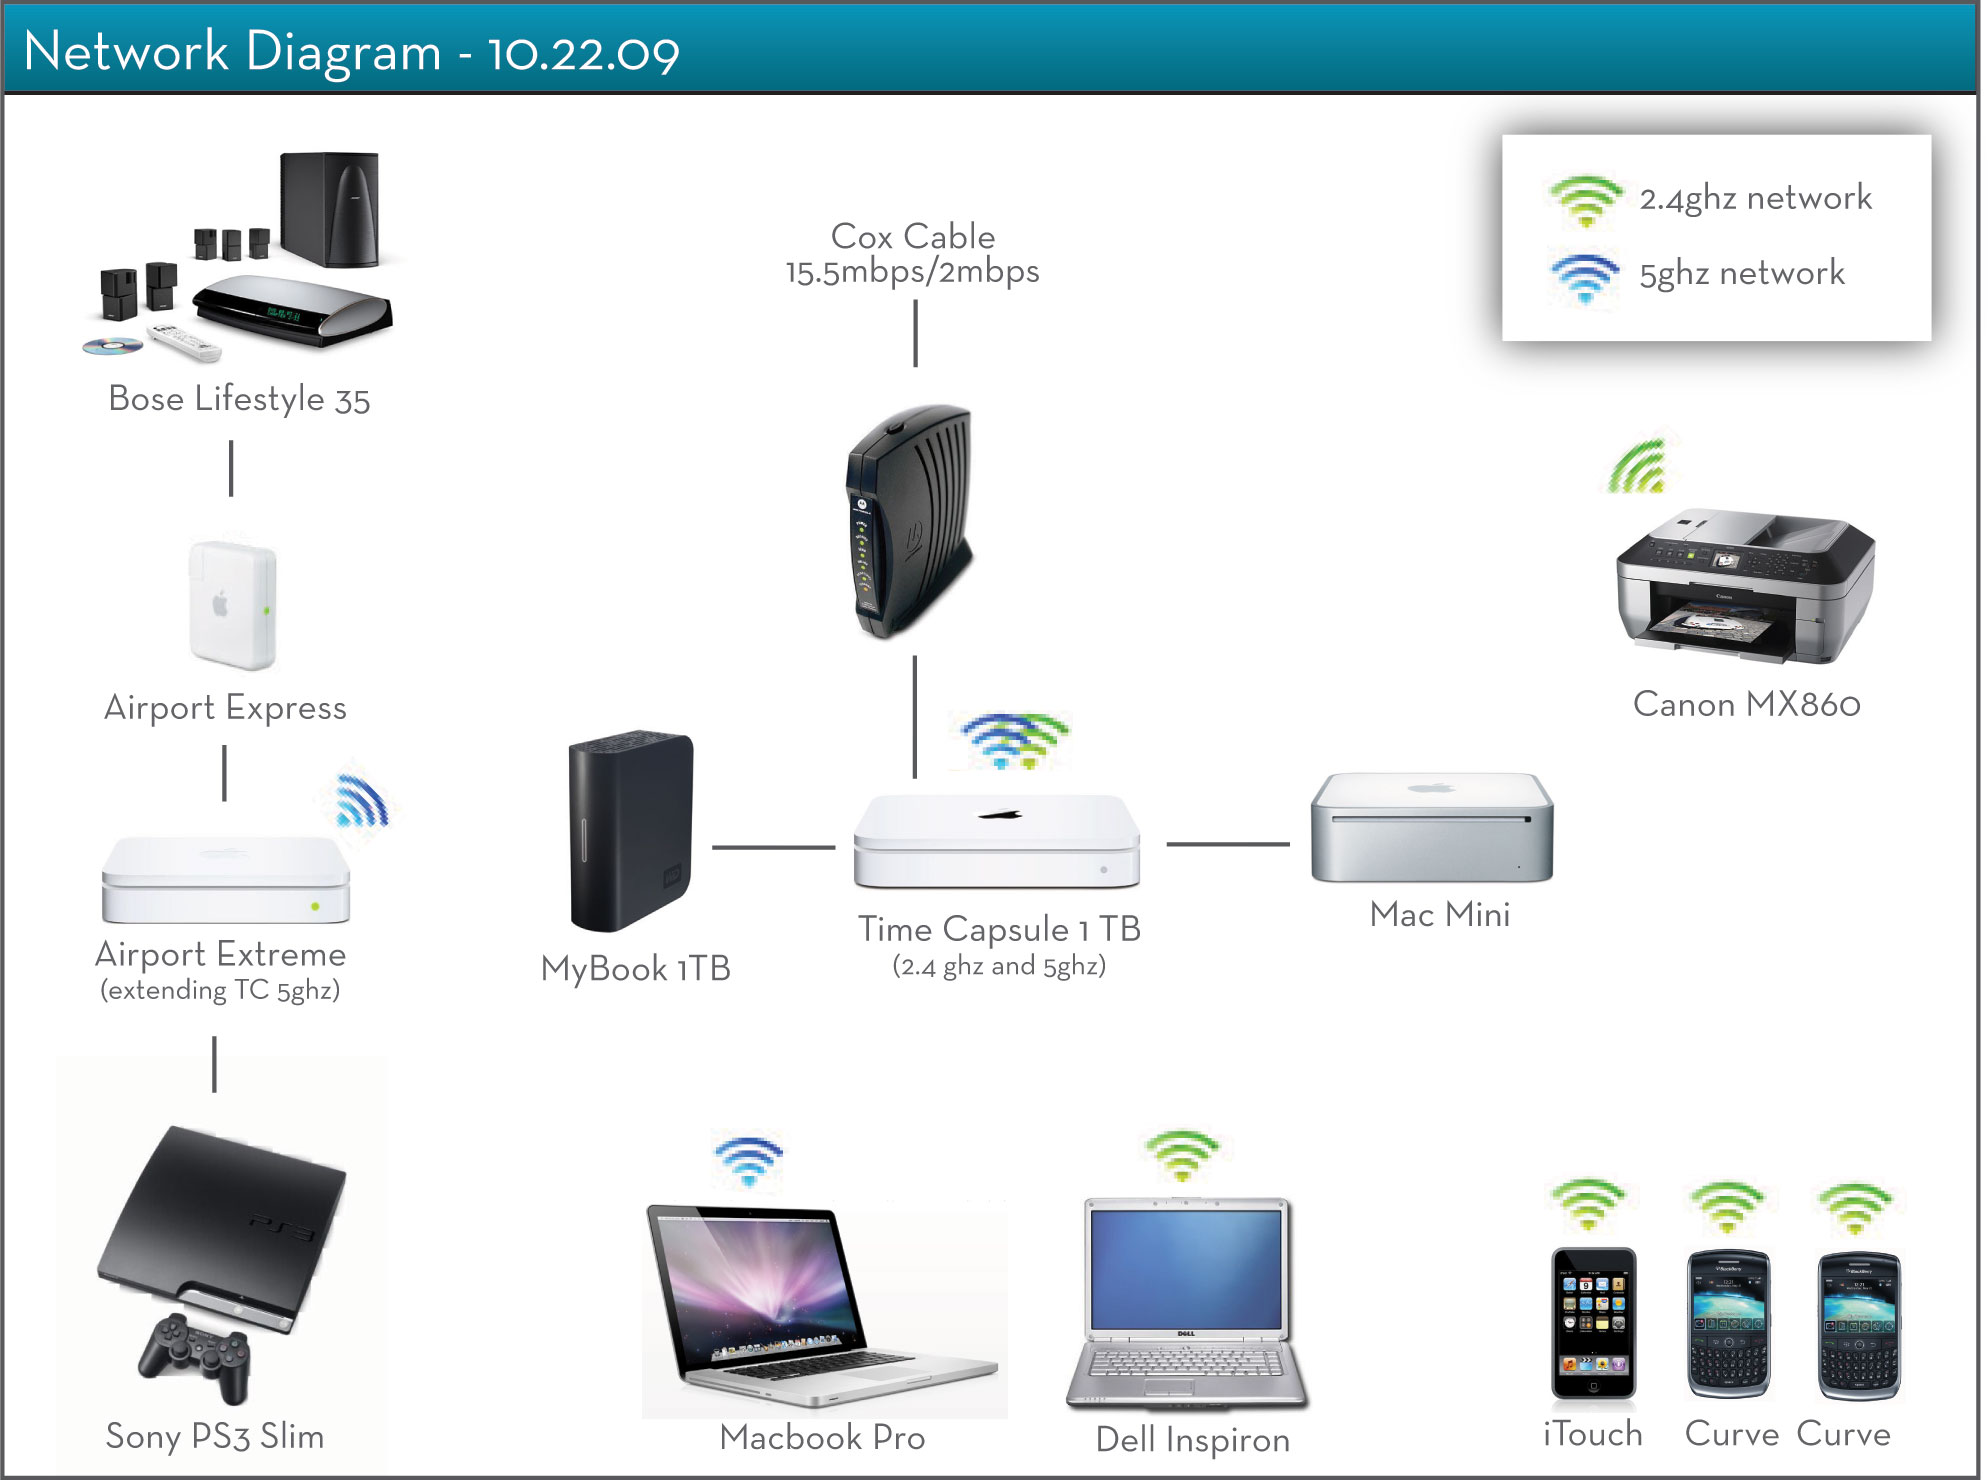 post your network diagrams and pics! macrumors forums